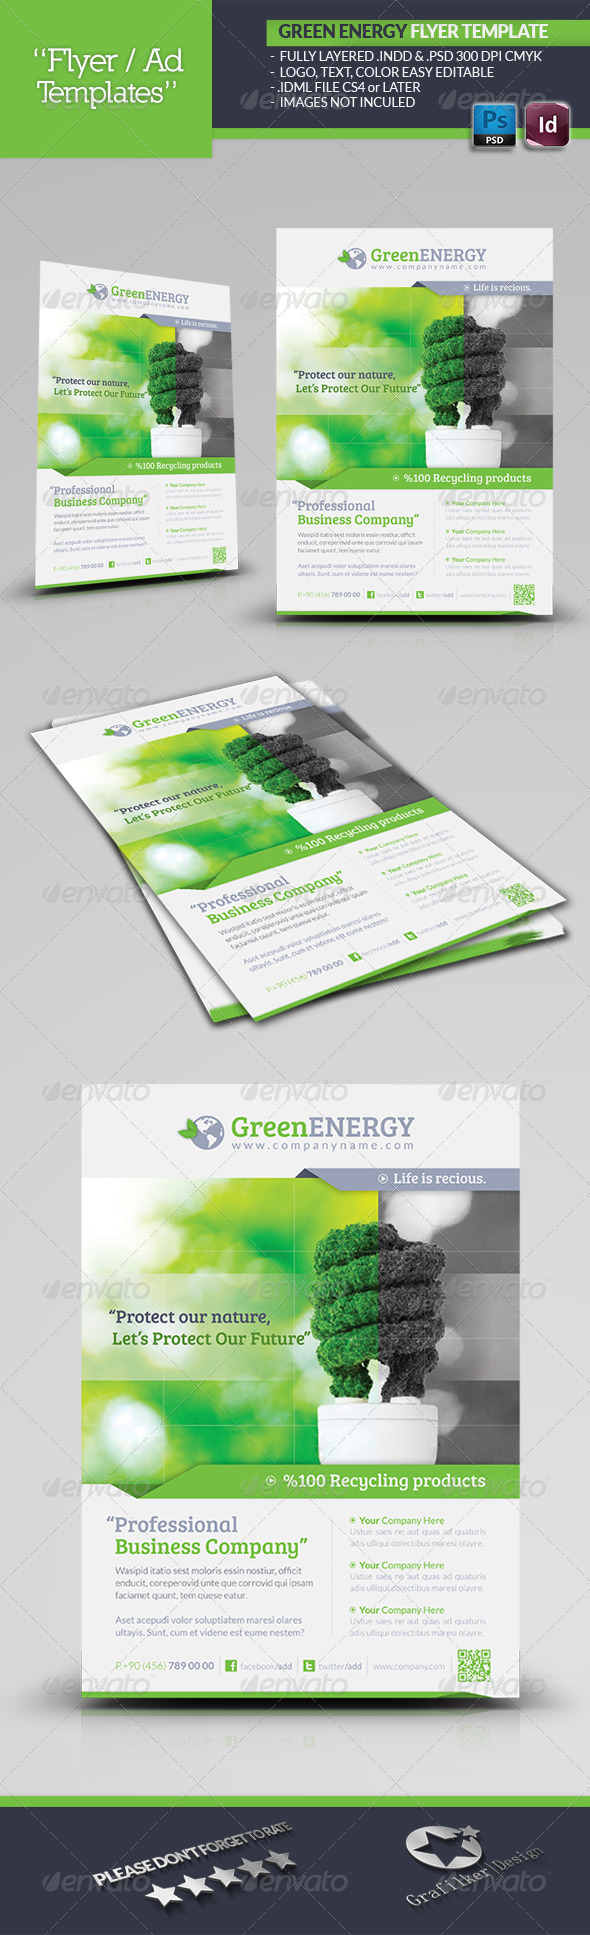 Green Energy Flyer Template - Corporate Flyers